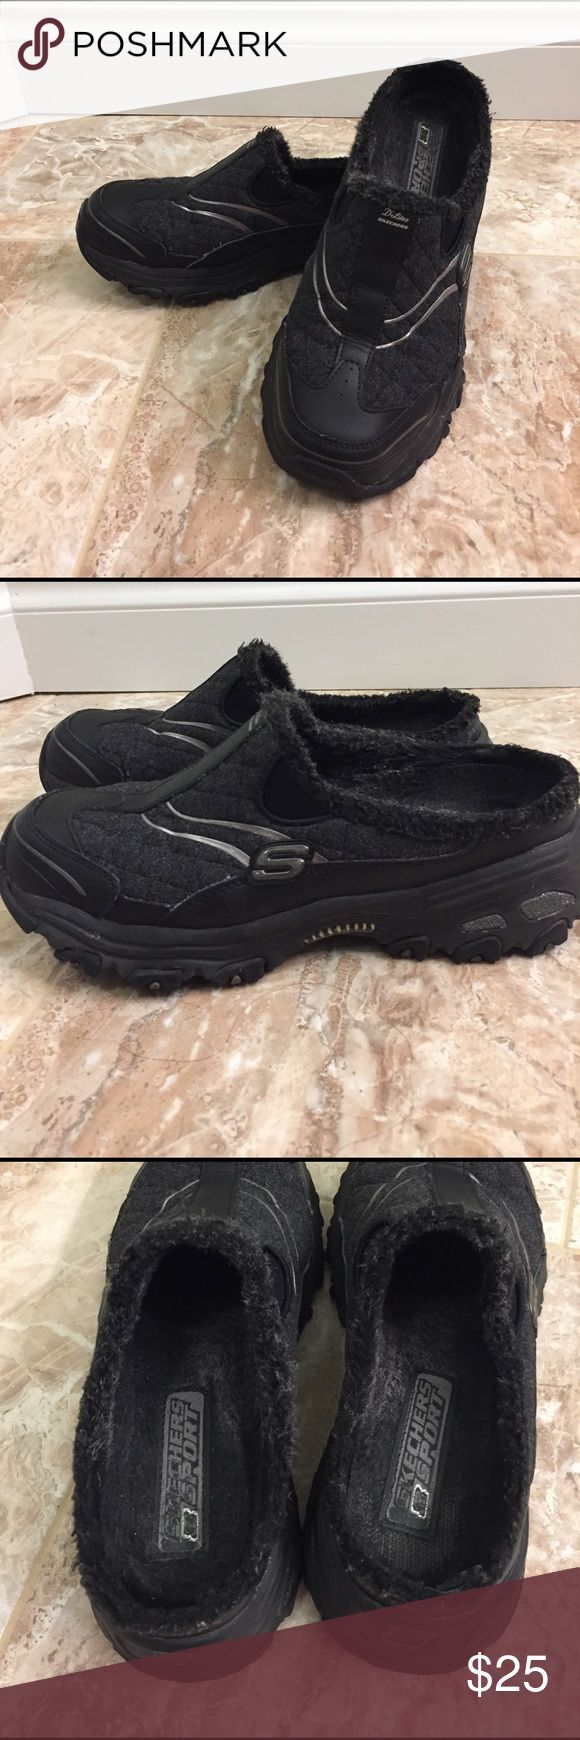 Women's Skechers Sport Slip On D'lites 8.5 Cute sporty pair of ladies Skechers Slip on shoes! Has faux fur lining and some silver and glitter accents on the outside. Great tread on bottom! Size 8.5. Very comfortable! Just the wrong size for me :( Skechers Shoes Athletic Shoes